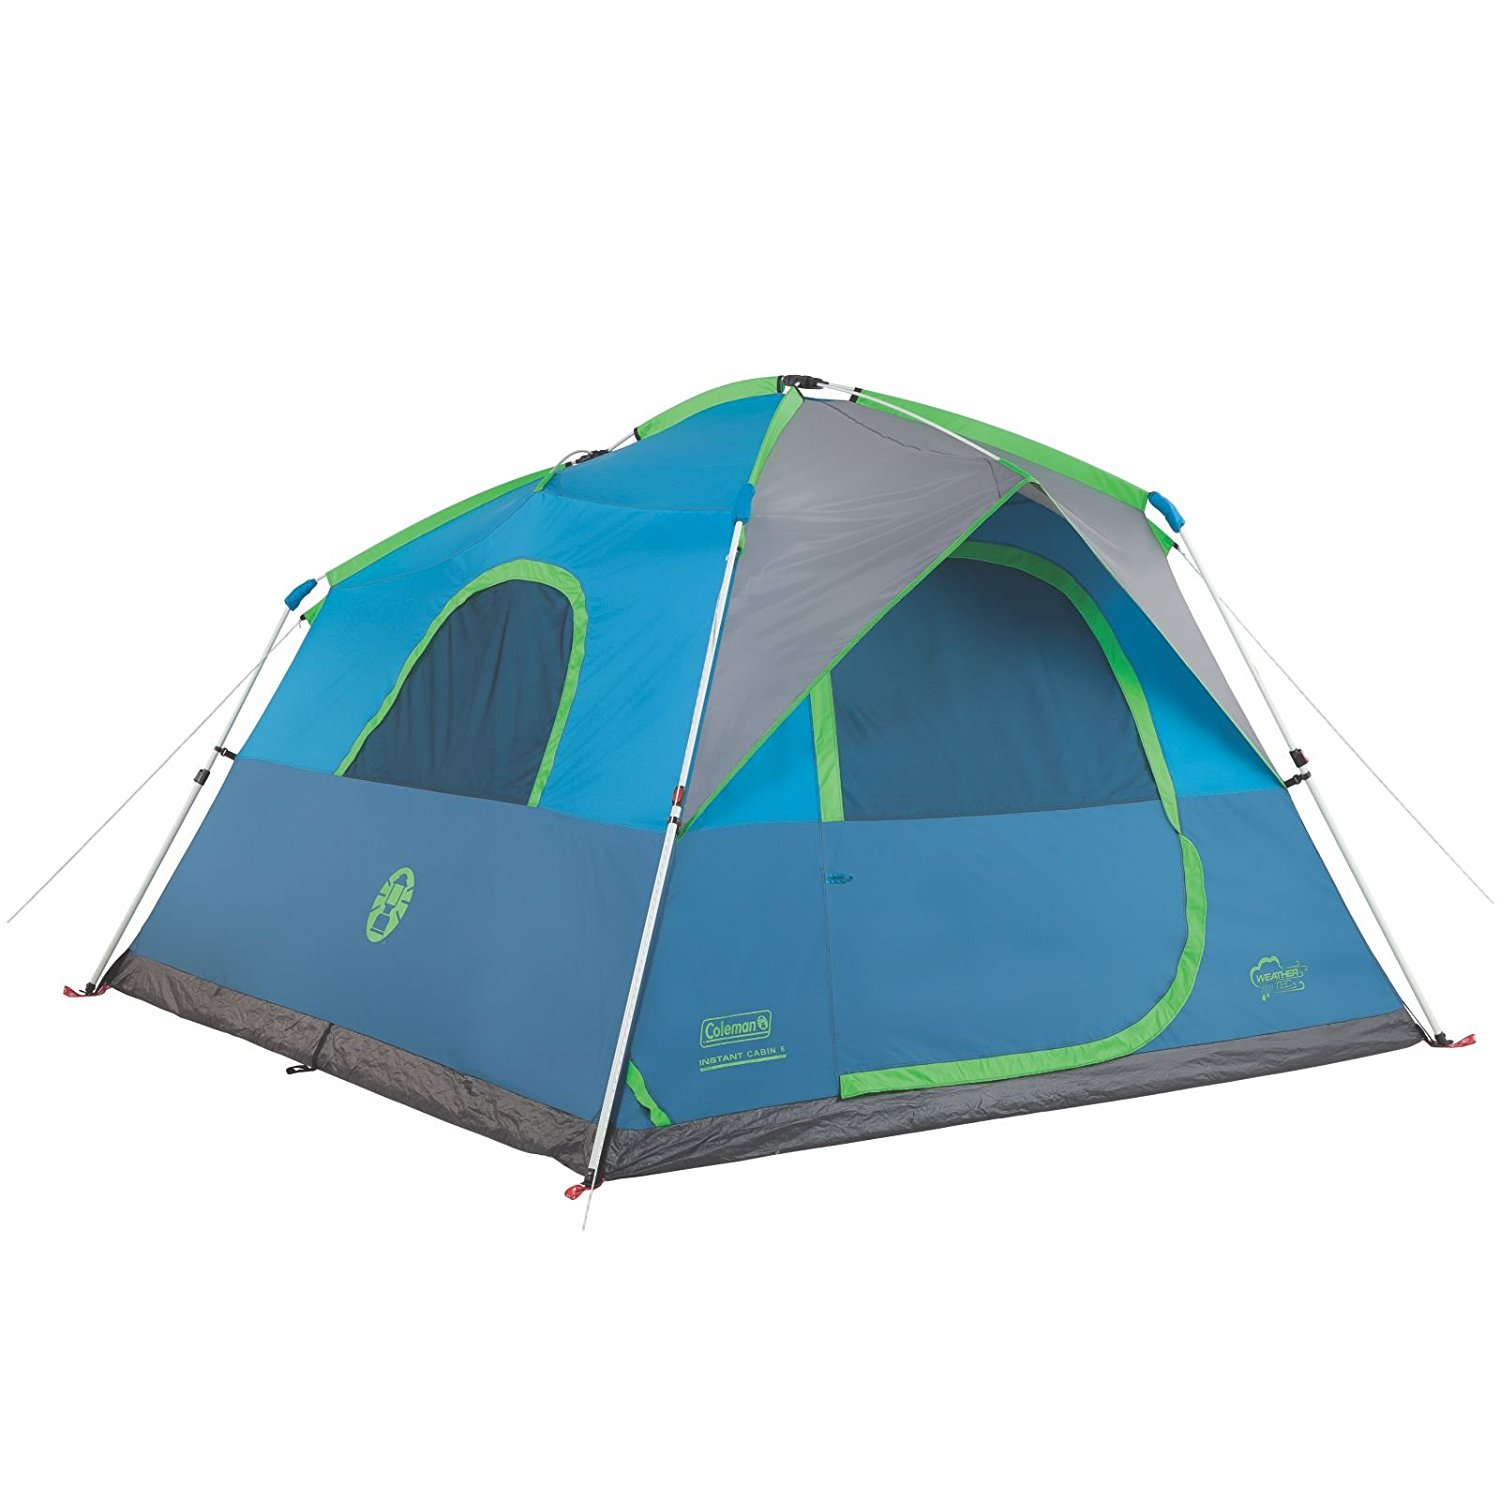 Coleman 6 Person Instant Signal Mountain Tent SKU: 200002...